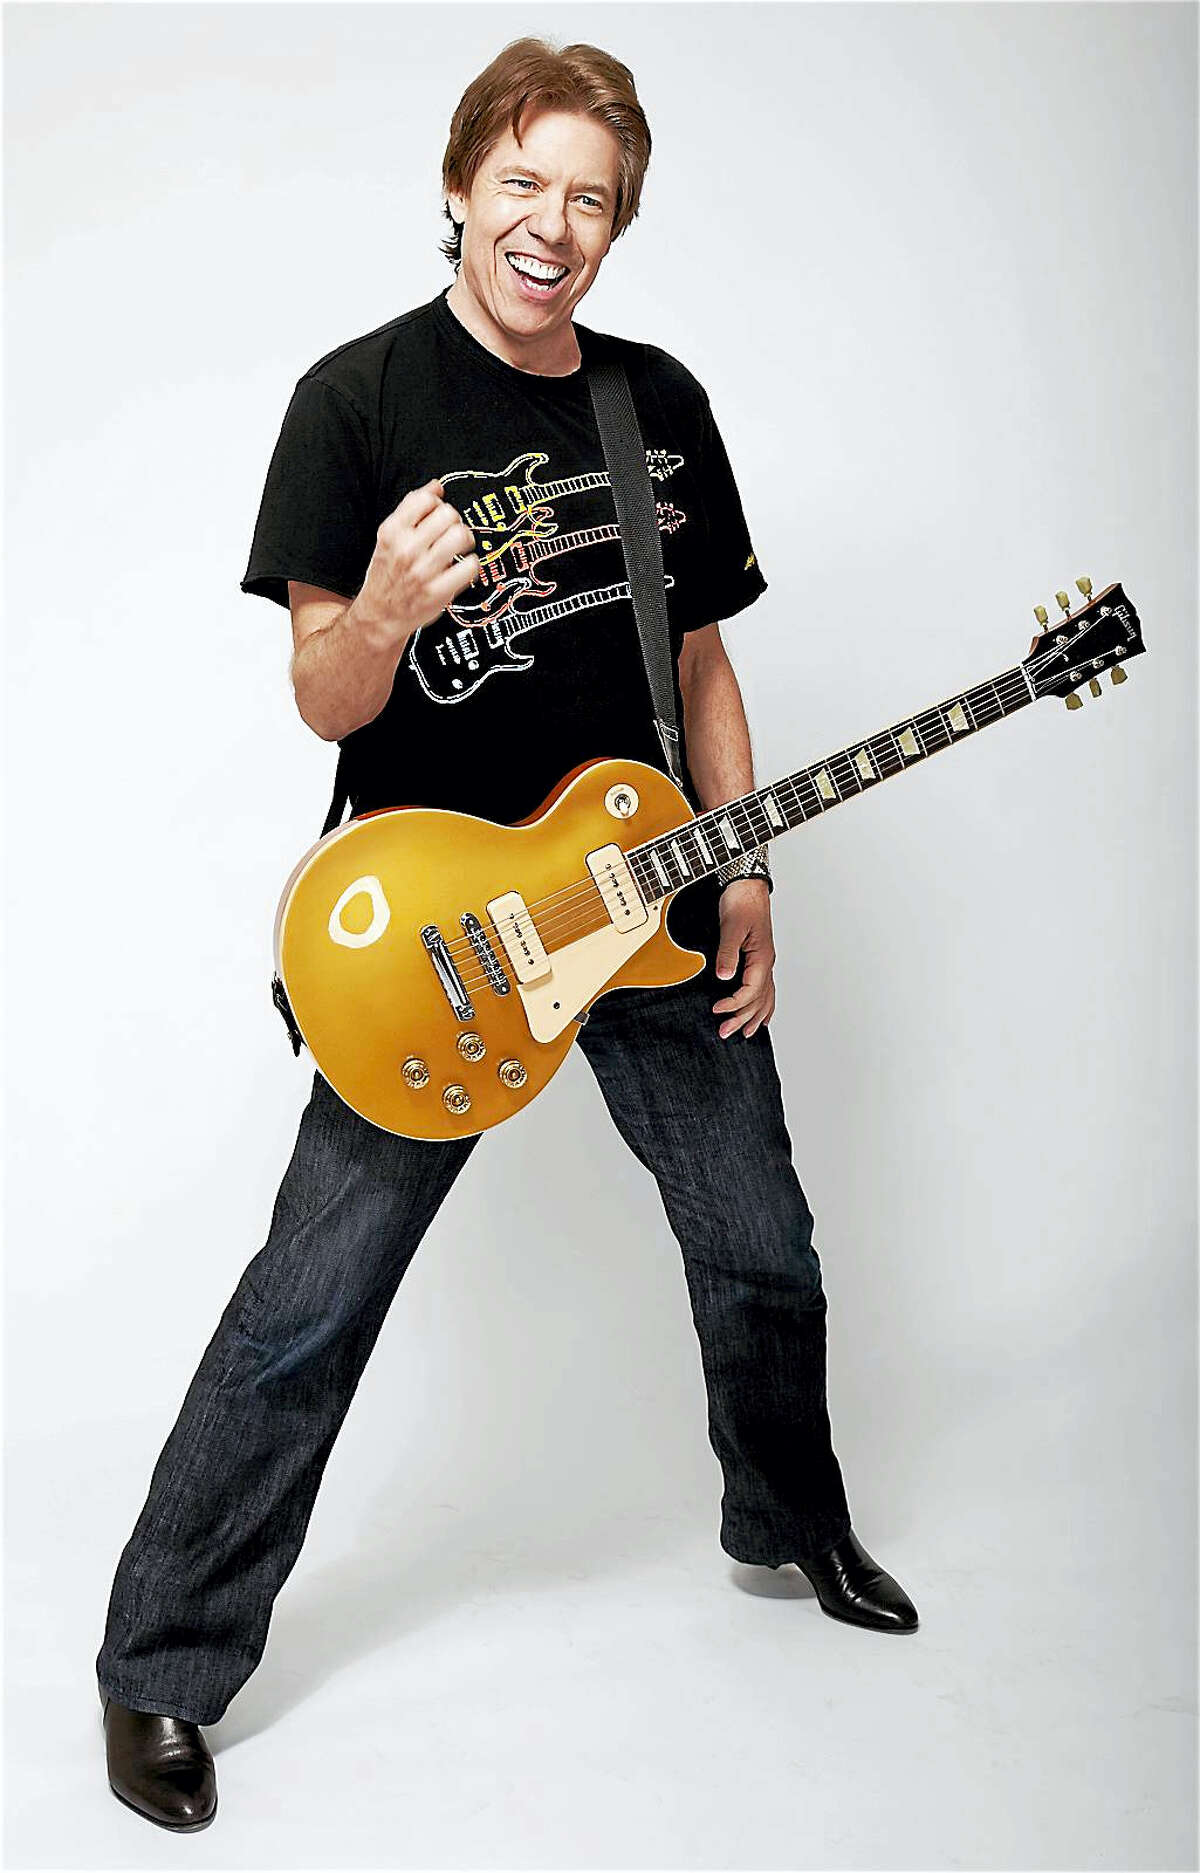 Contributed photoGeorge Thorogood & The Destroyers are set to perform at The Big E in West Springfield, Mass., Saturday, Oct. 1.